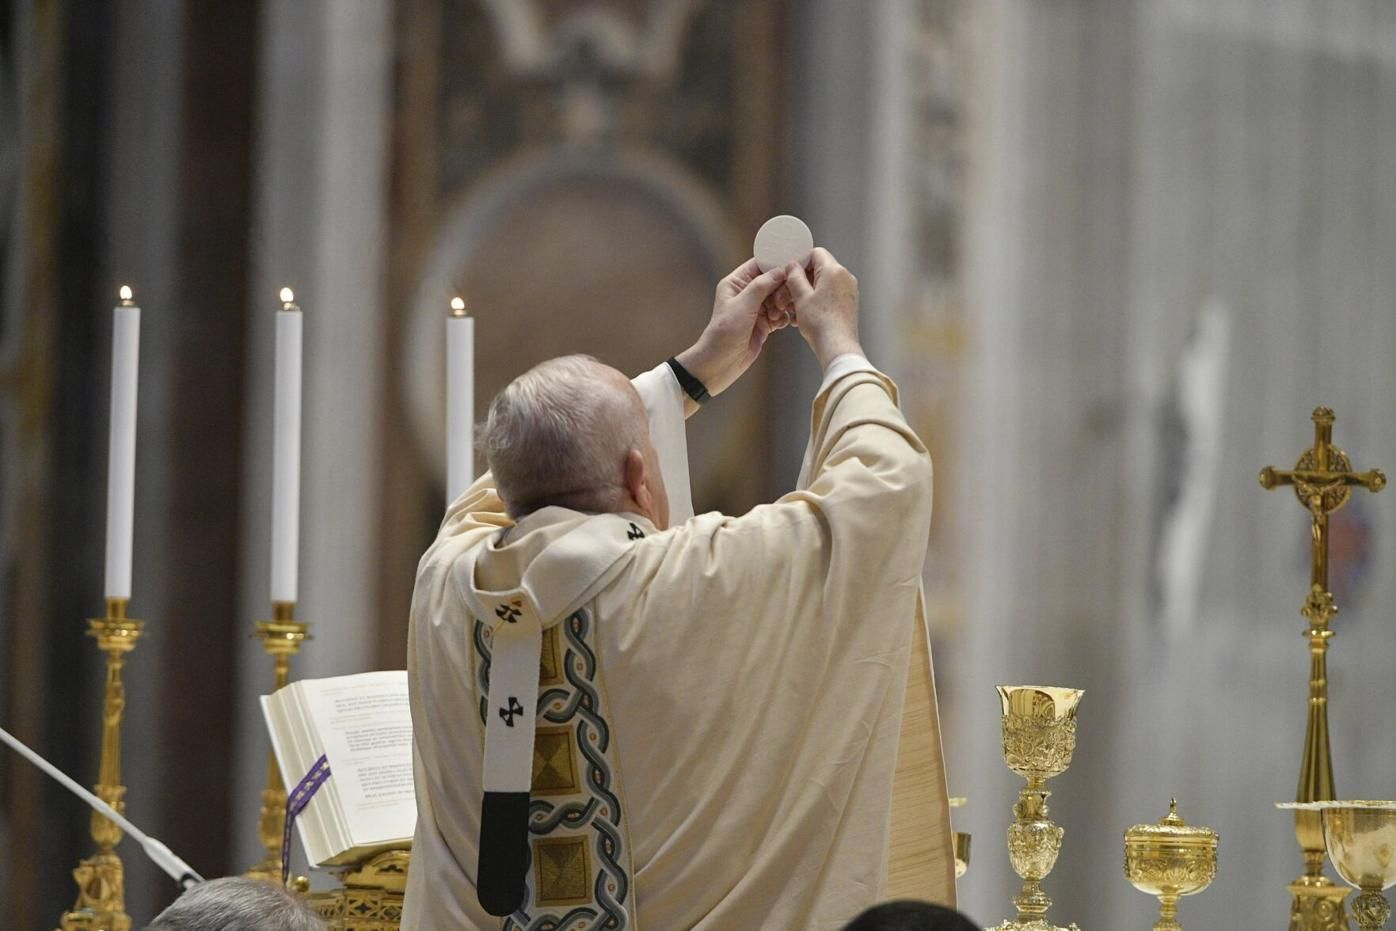 Living the Truth in Love - Returning to the Eucharist